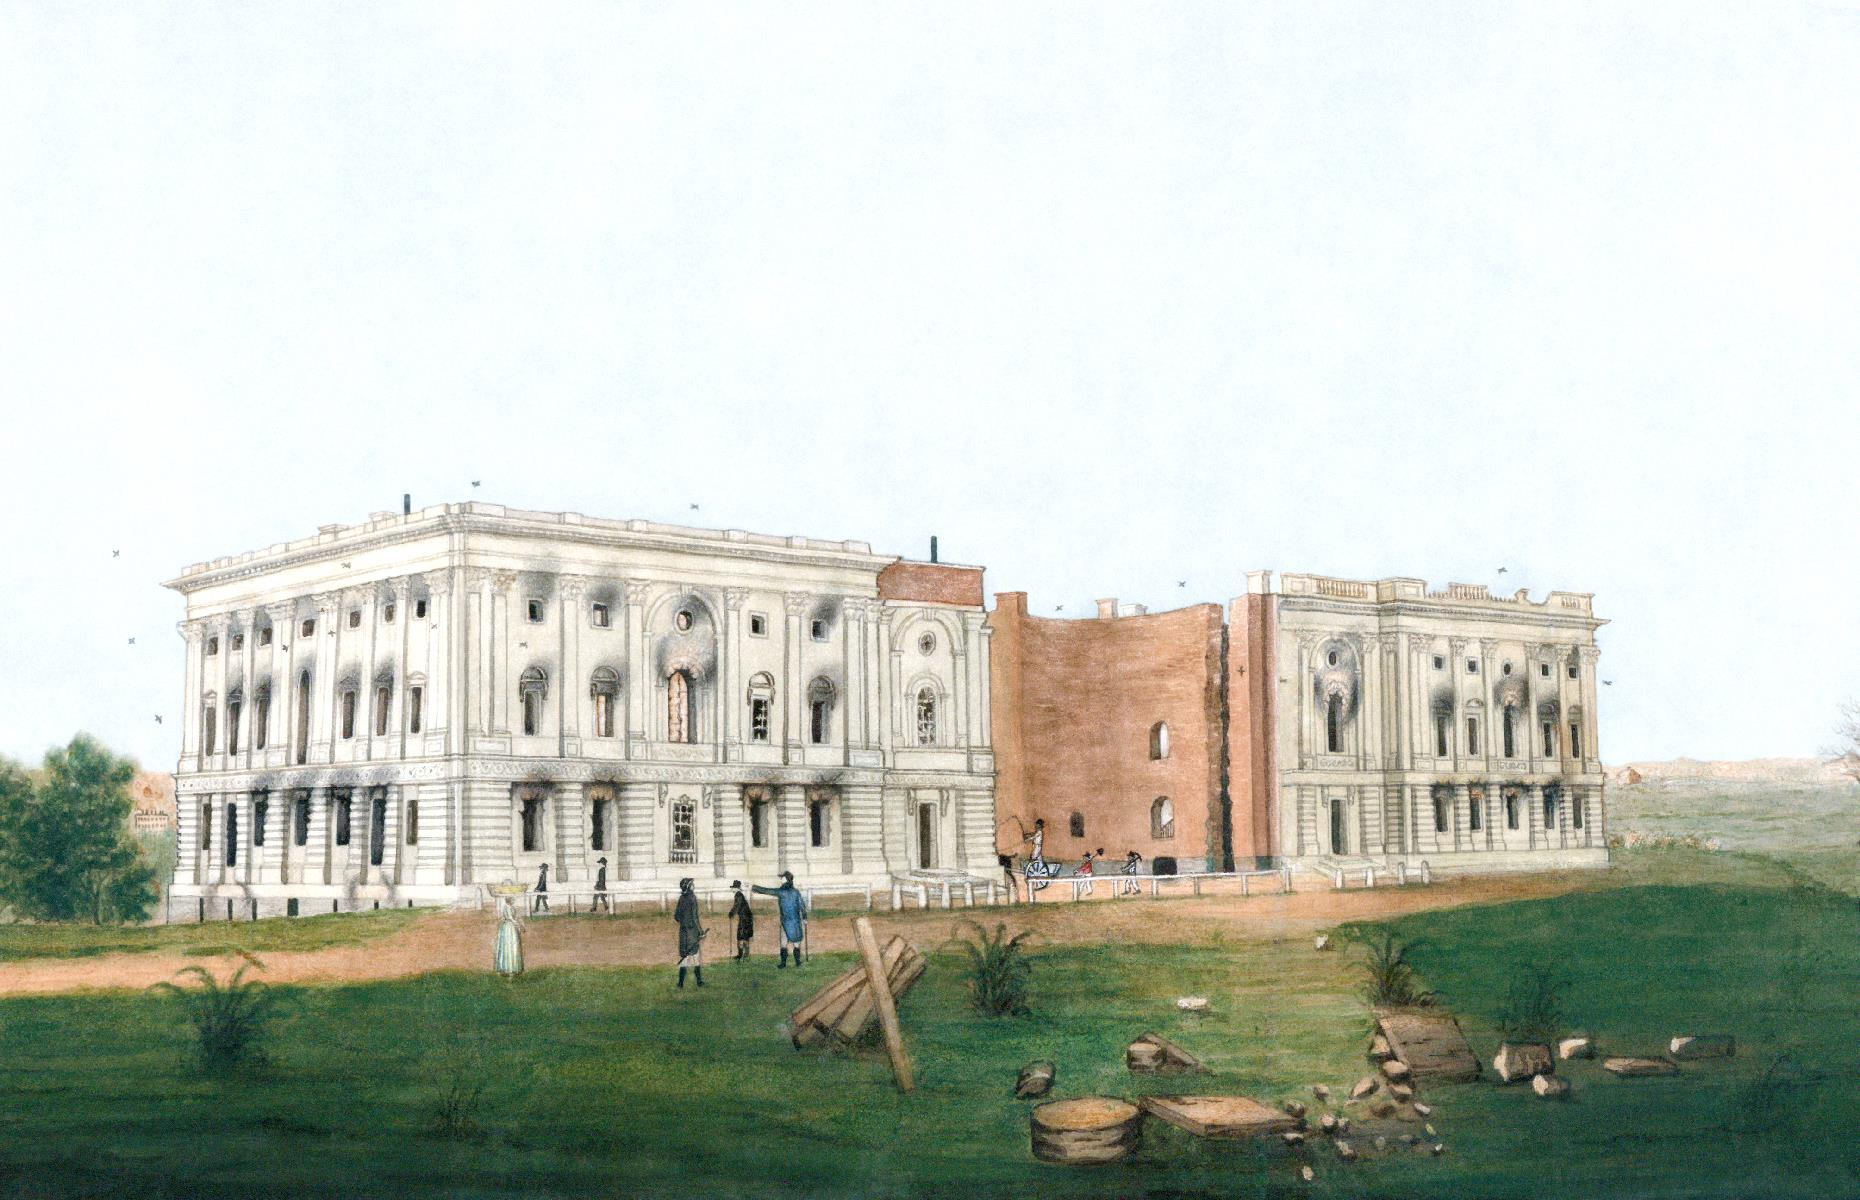 Slide 31 of 32: The Capitol Building suffered a similar fate during the War of 1812. It too was set alight by the British during the Burning of Washington in 1814, and was left almost completely devastated. This painting by American artist George Munger shows the mighty building in the aftermath of the blaze – you can make out the blackened walls and the hollow shell of the rotunda without a façade or a roof. Take a look at 50 of America's most important landmarks here.